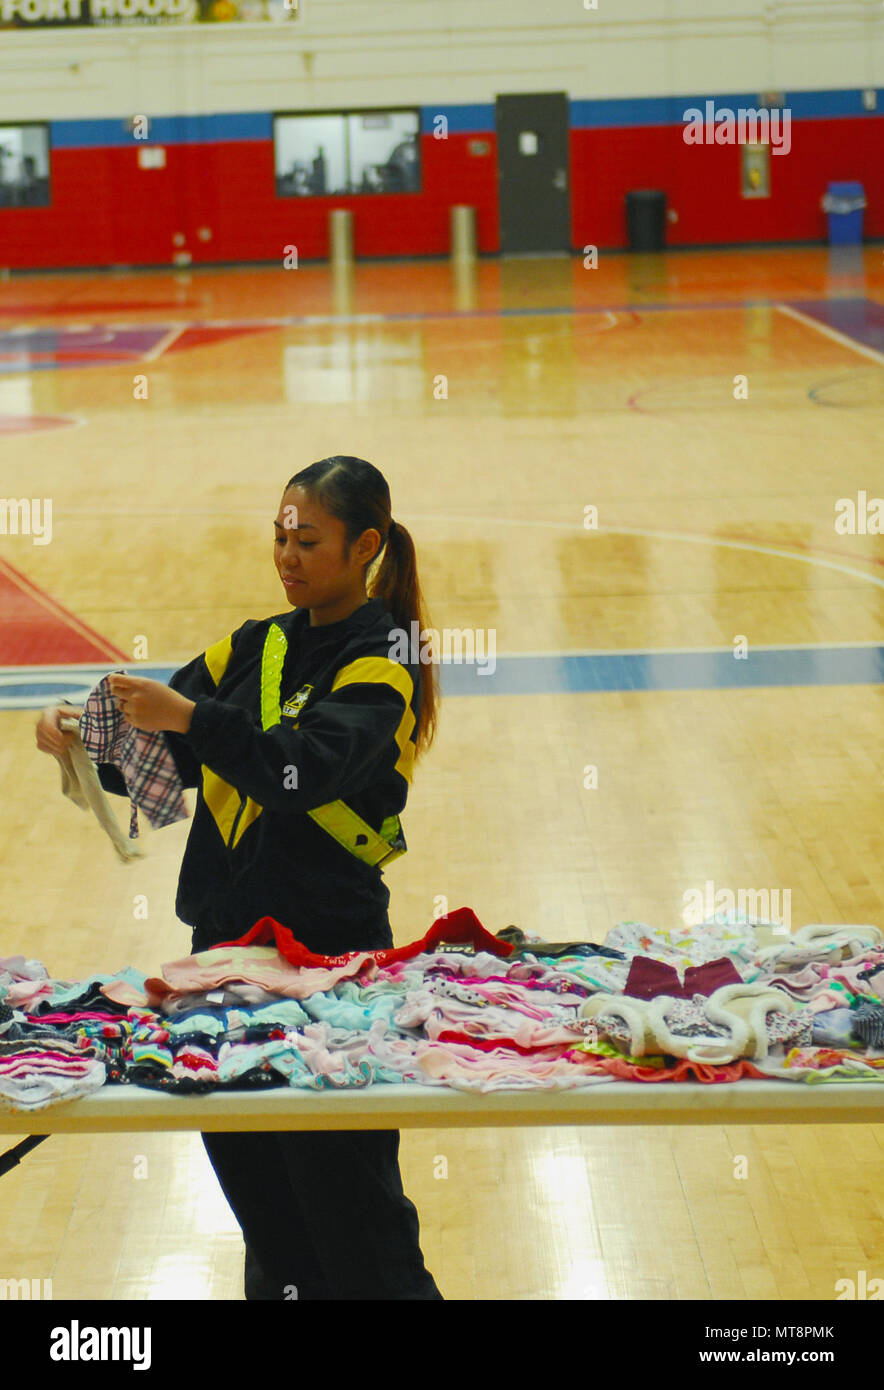 Spc. Diaresa Martinez, a food service specialist from 1st Battalion, 9th U.S. Cavalry Regiment, 2nd Armored Combat Team, 1st Cavalry Regiment, looks at baby clothes during Pregnancy Postpartum Physical Training Mother's Day baby clothing swap on Friday at Abrams gym. - Stock Image